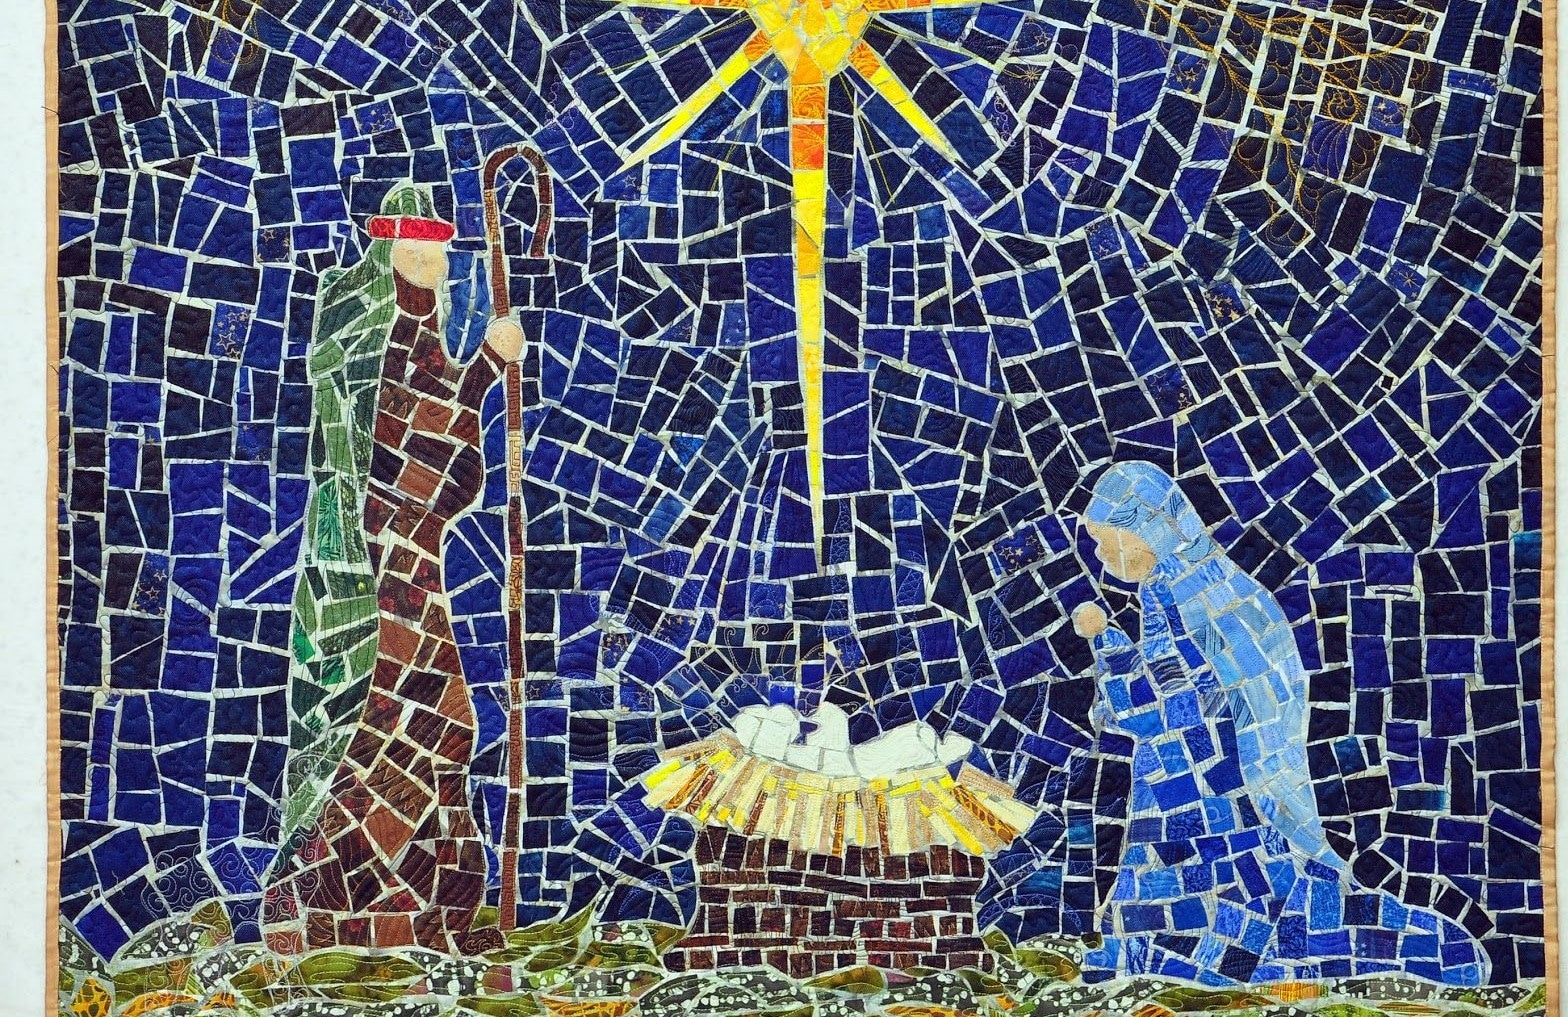 christ is born, Mary Jesus and the wise man, tiled and glass image